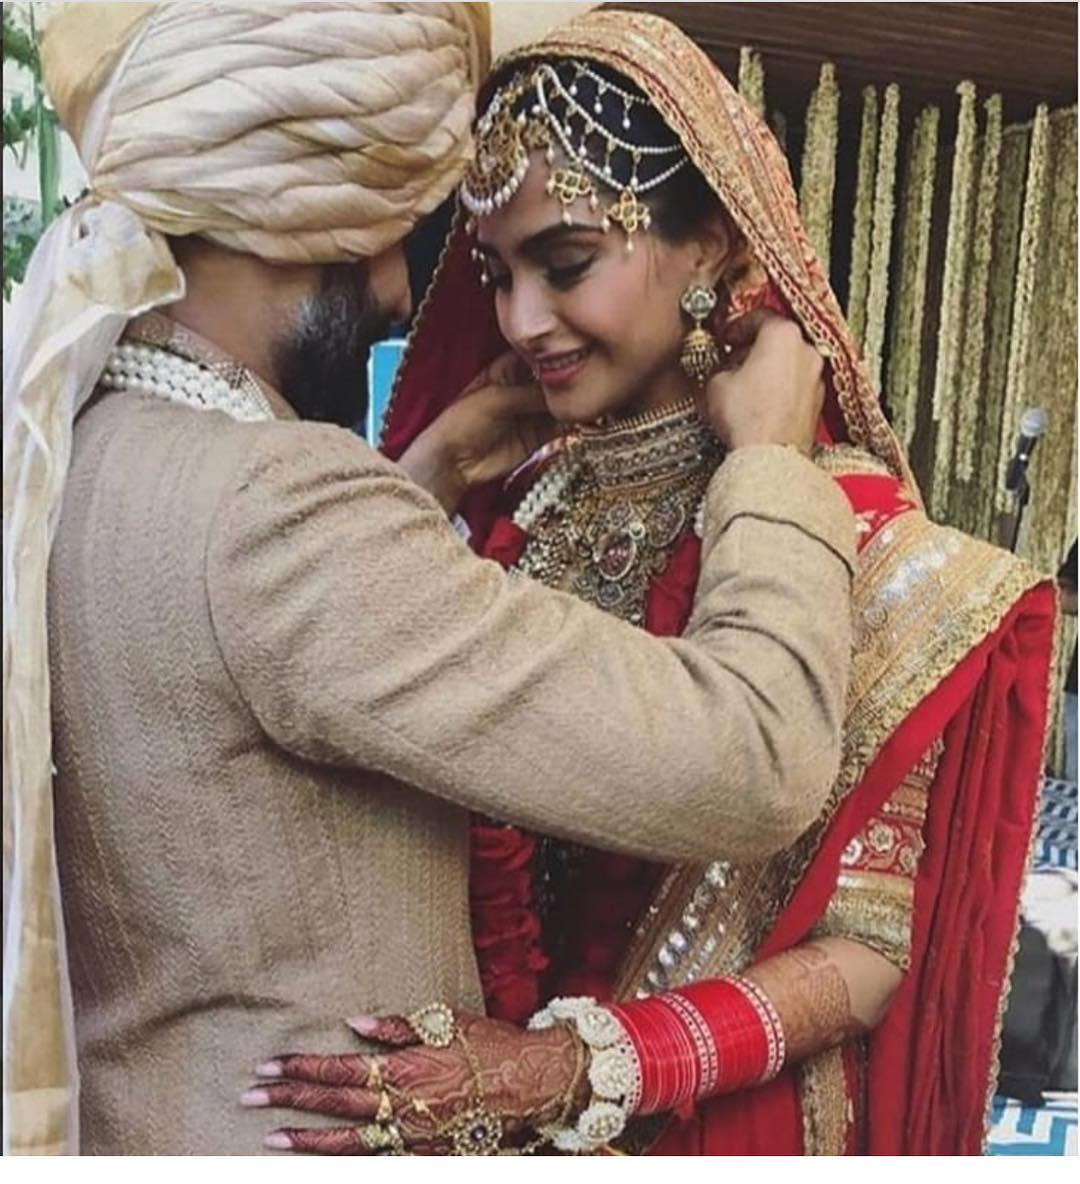 26-1 Sonam Kapoor Wedding Pics - Engagement and Complete Wedding Pictures